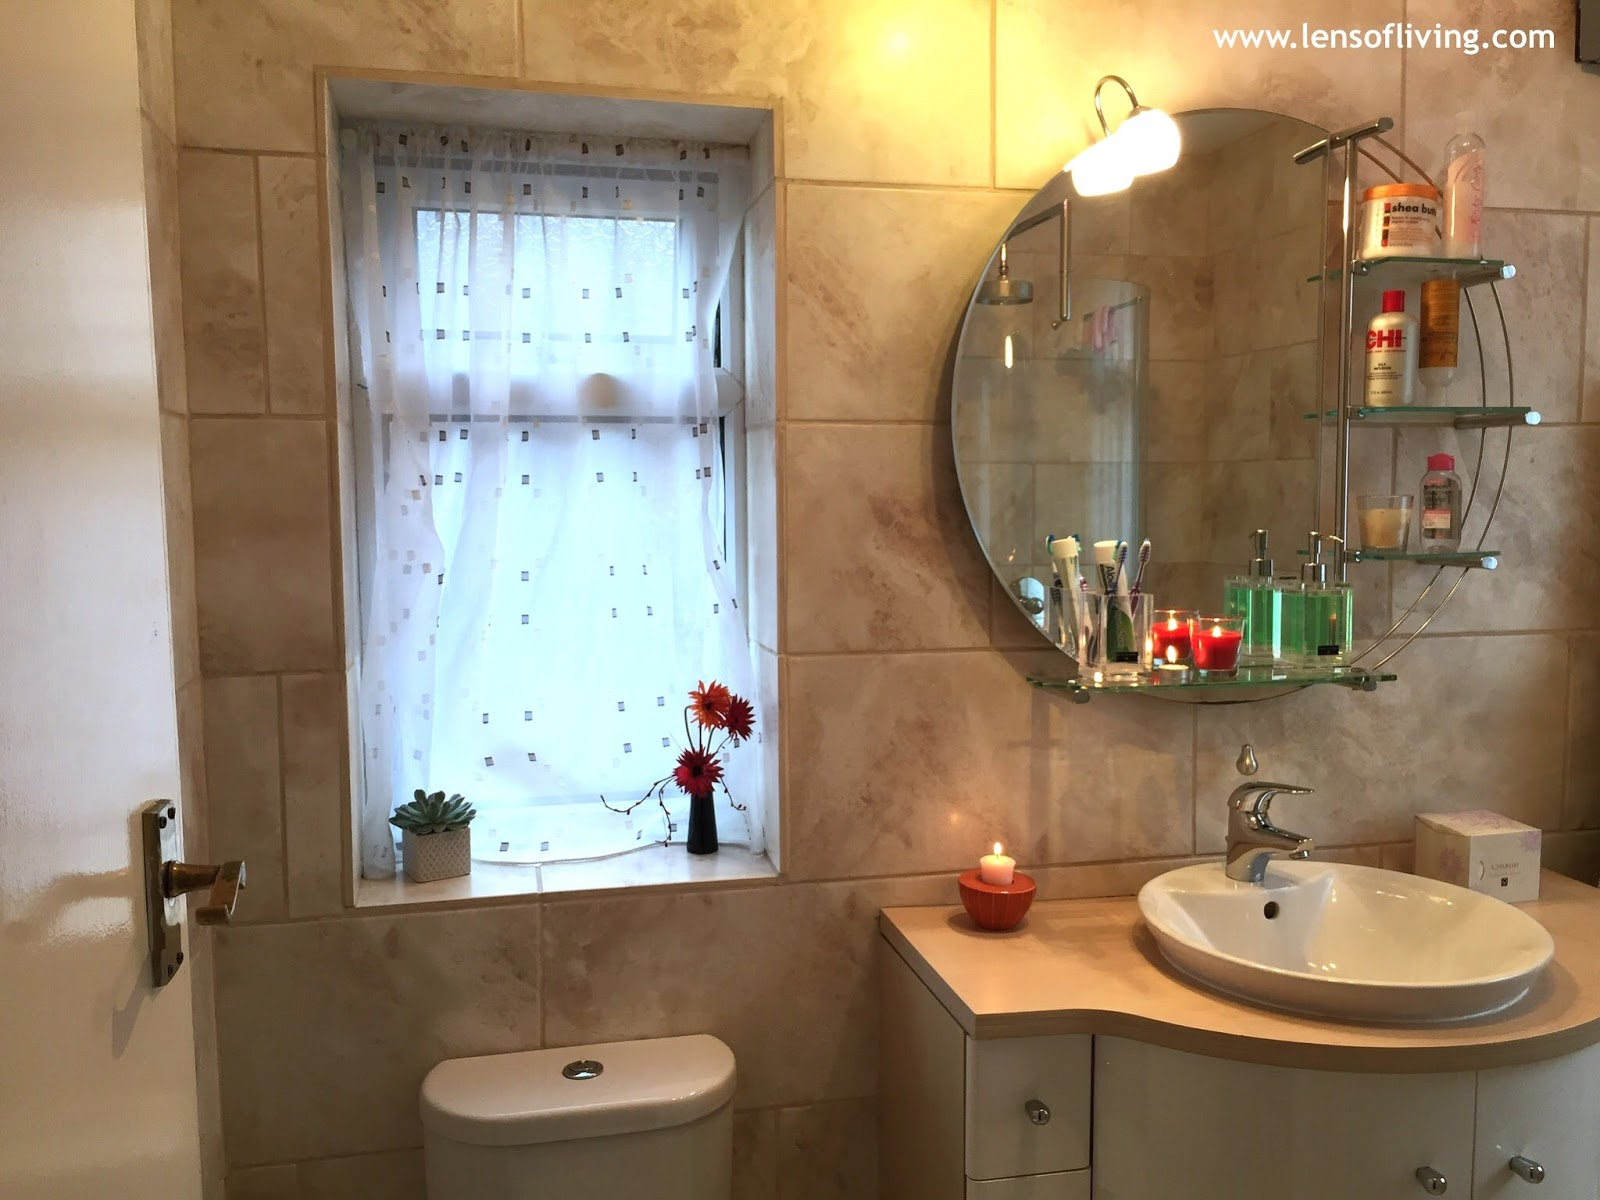 9 Bathroom Cleaning Tips For The Bathroom Deep Cleaning Routine [Video  Included]